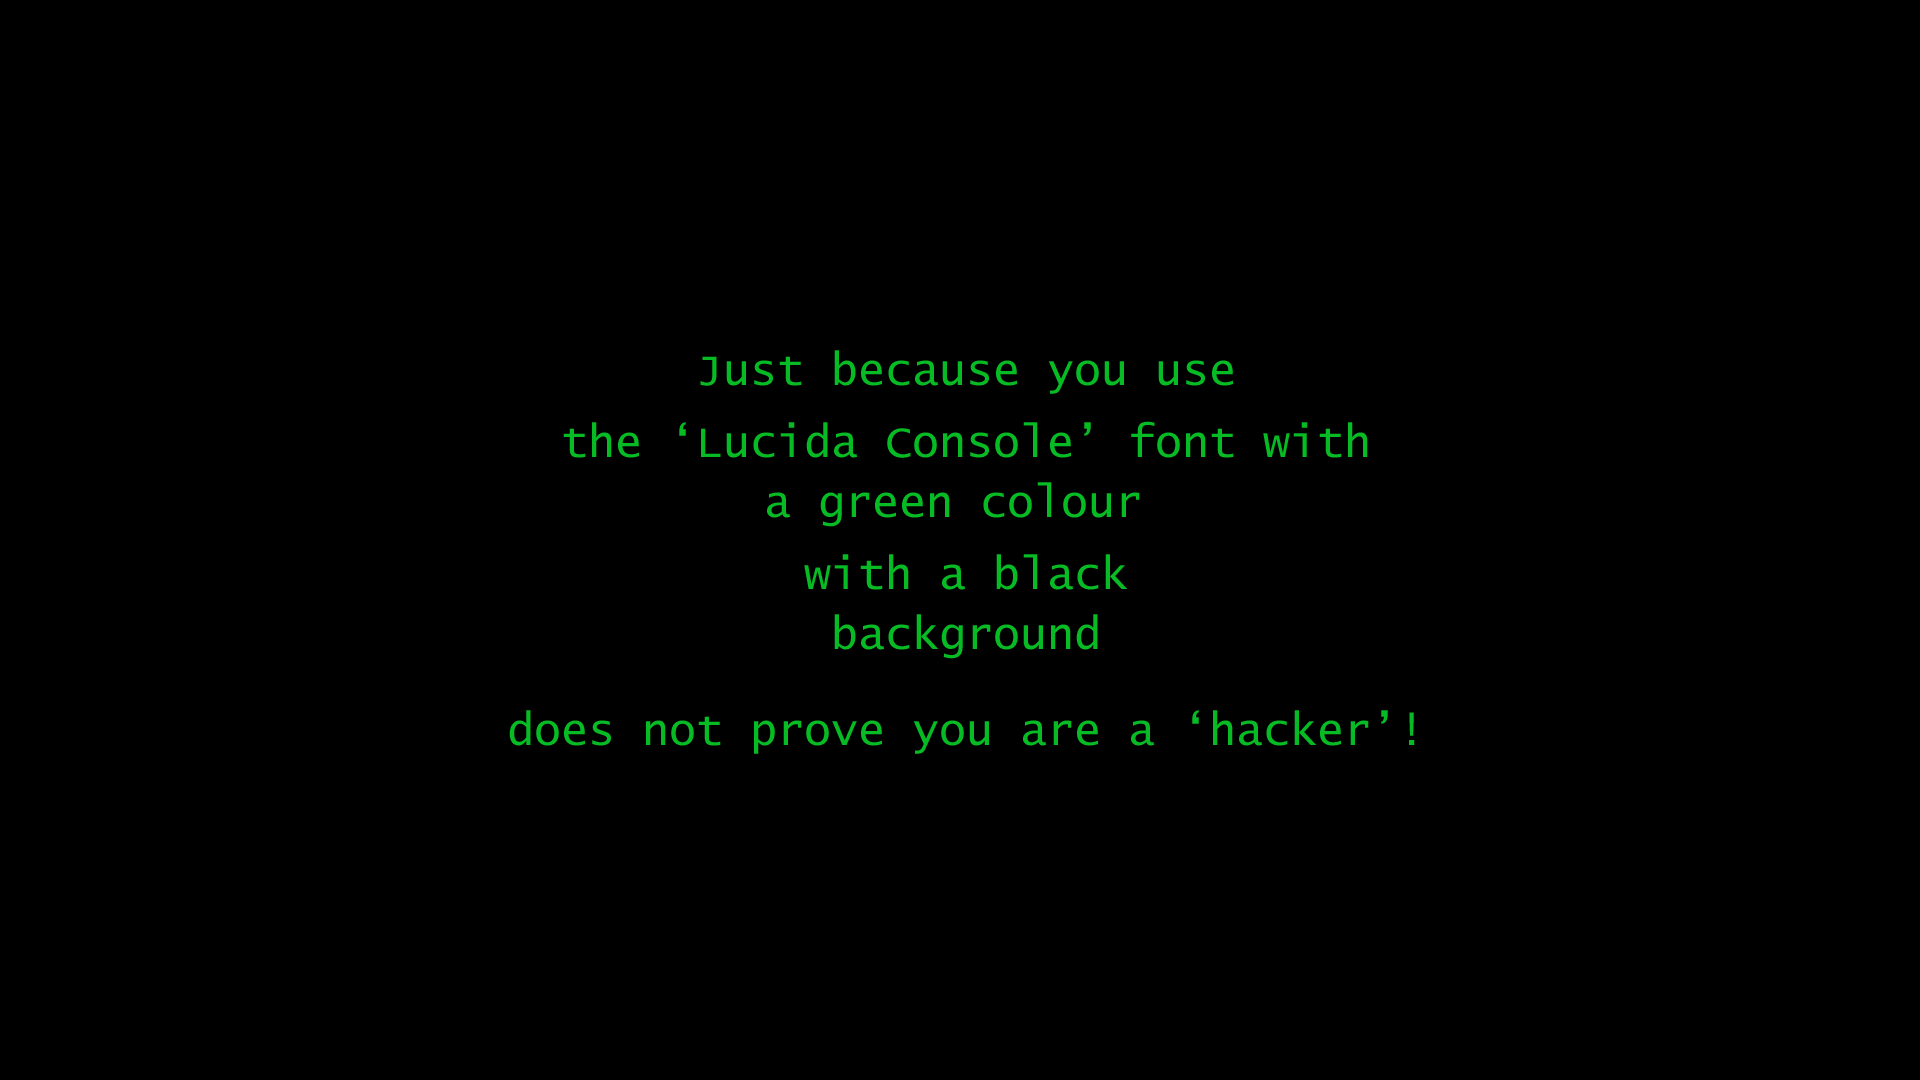 Hacker Black Green computer wallpaper 1920x1080 69646 1920x1080